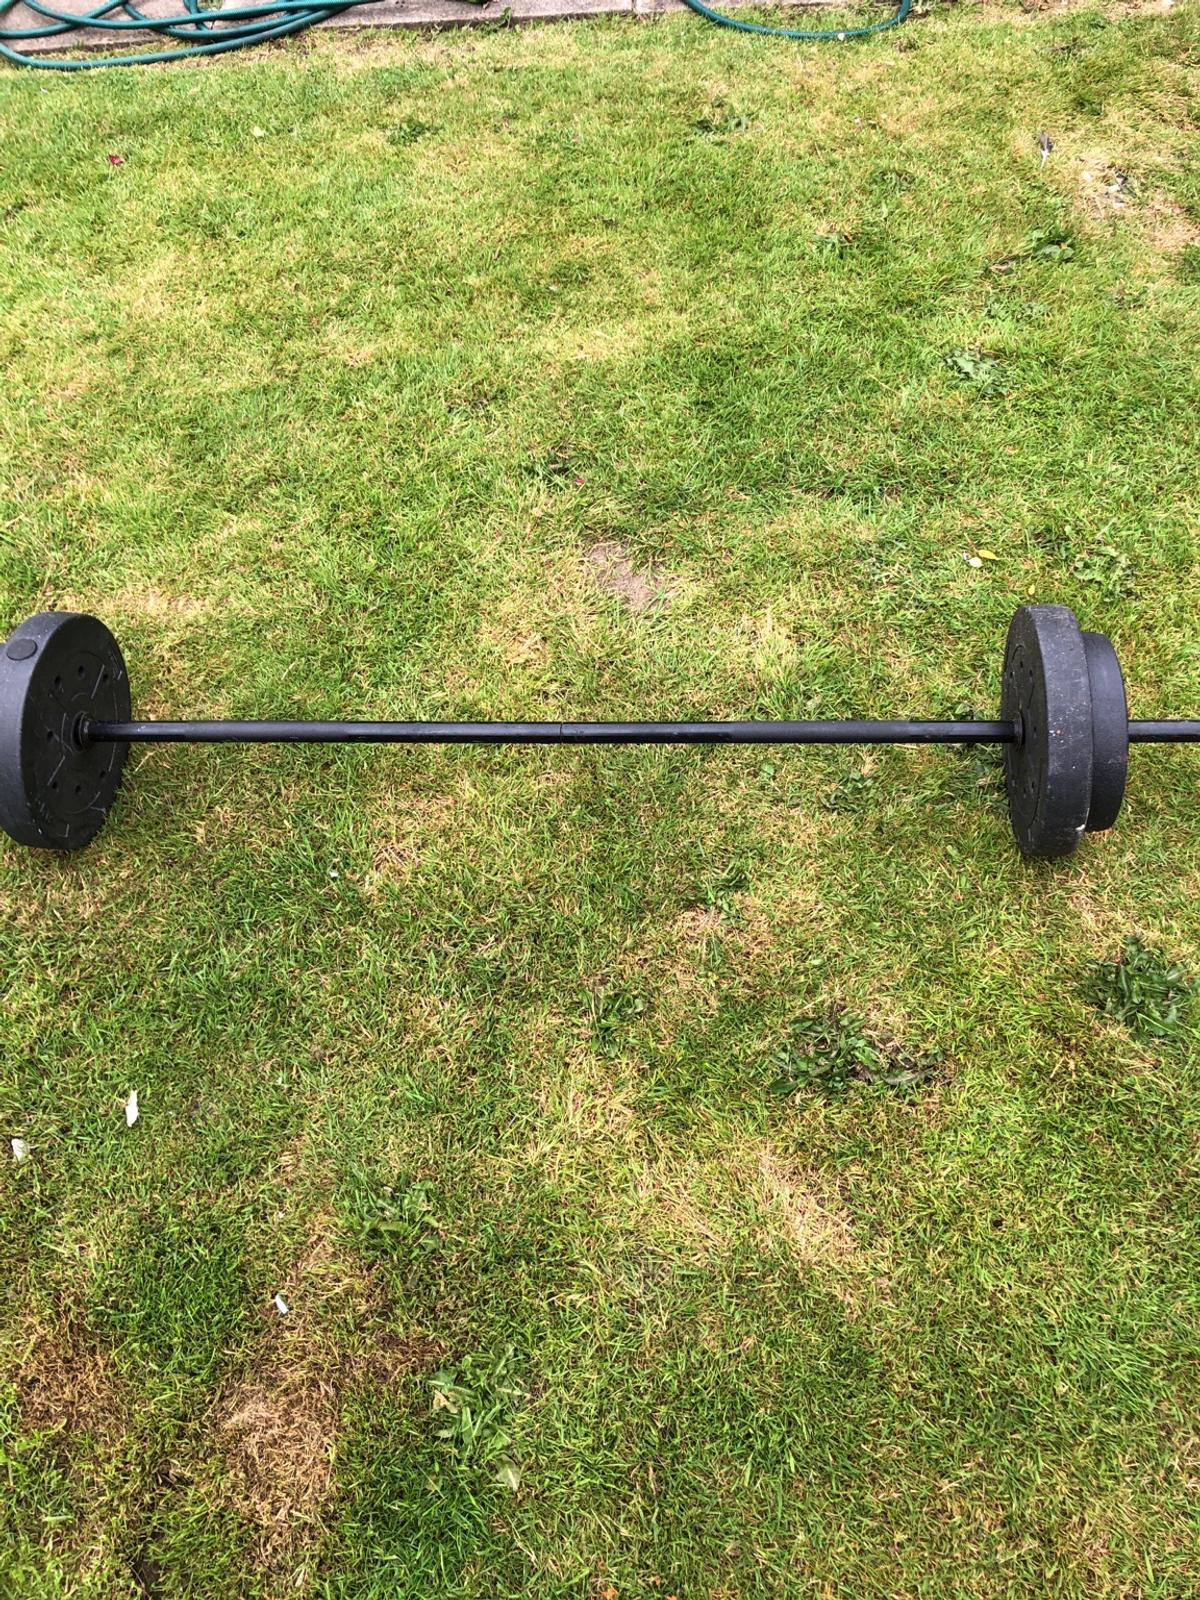 Weighing lifting bar with few weights £10 or offers in my way the weights are 2 x 5 kg and 2x2.5 kg